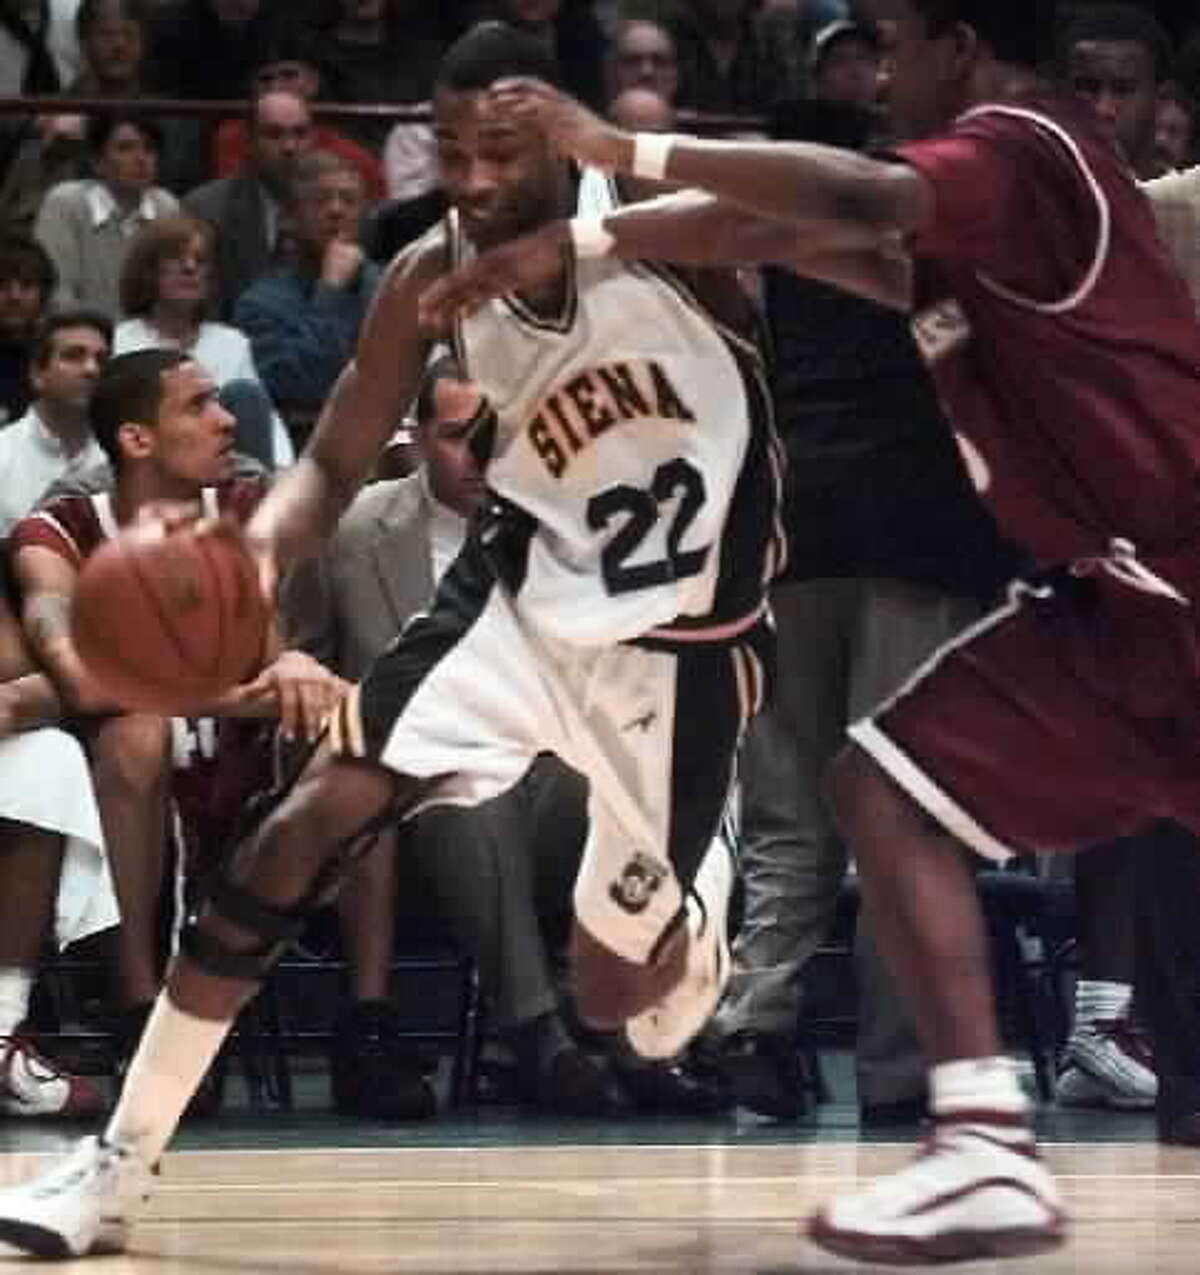 Marcus Faison led Siena basketball to the NCAA Tournament in 1999. (Times Union archive)